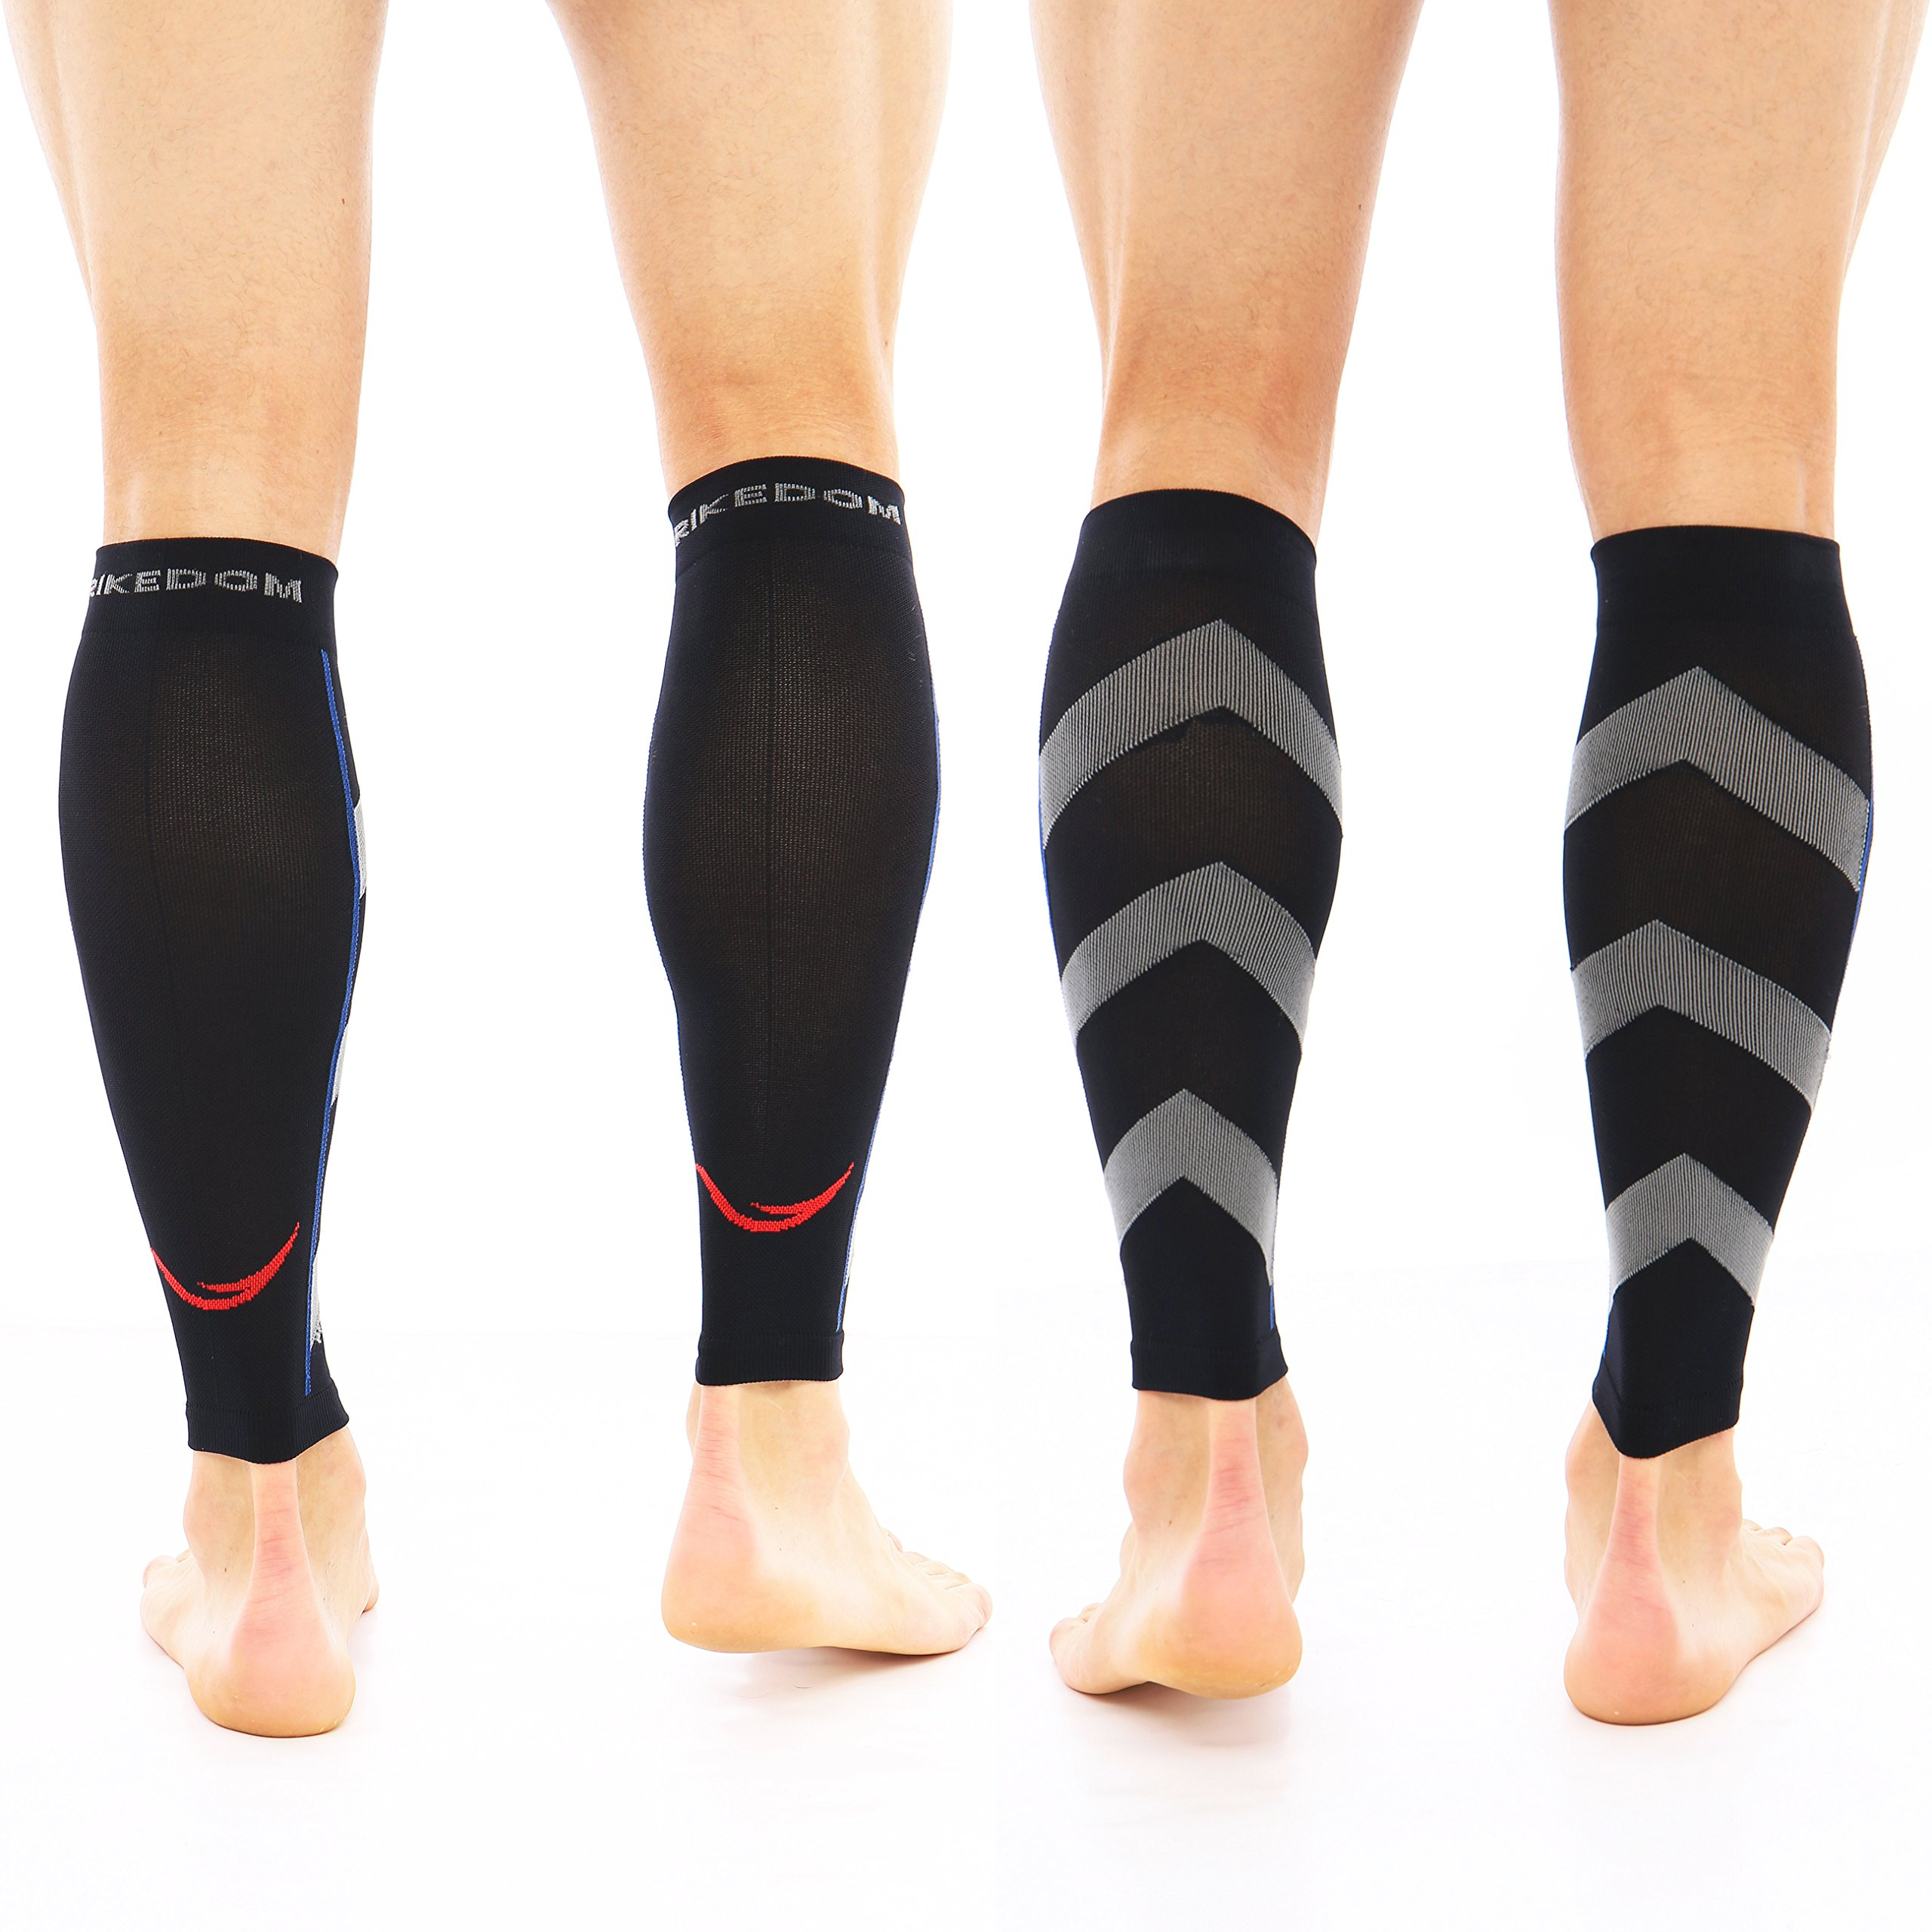 dcead8158a Graduated Calf Compression Sleeves Socks: Best Men & Women Pain Relief  Stocking for Shin Splints, Leg Cramps Strains, Varicose Veins, Swelling.